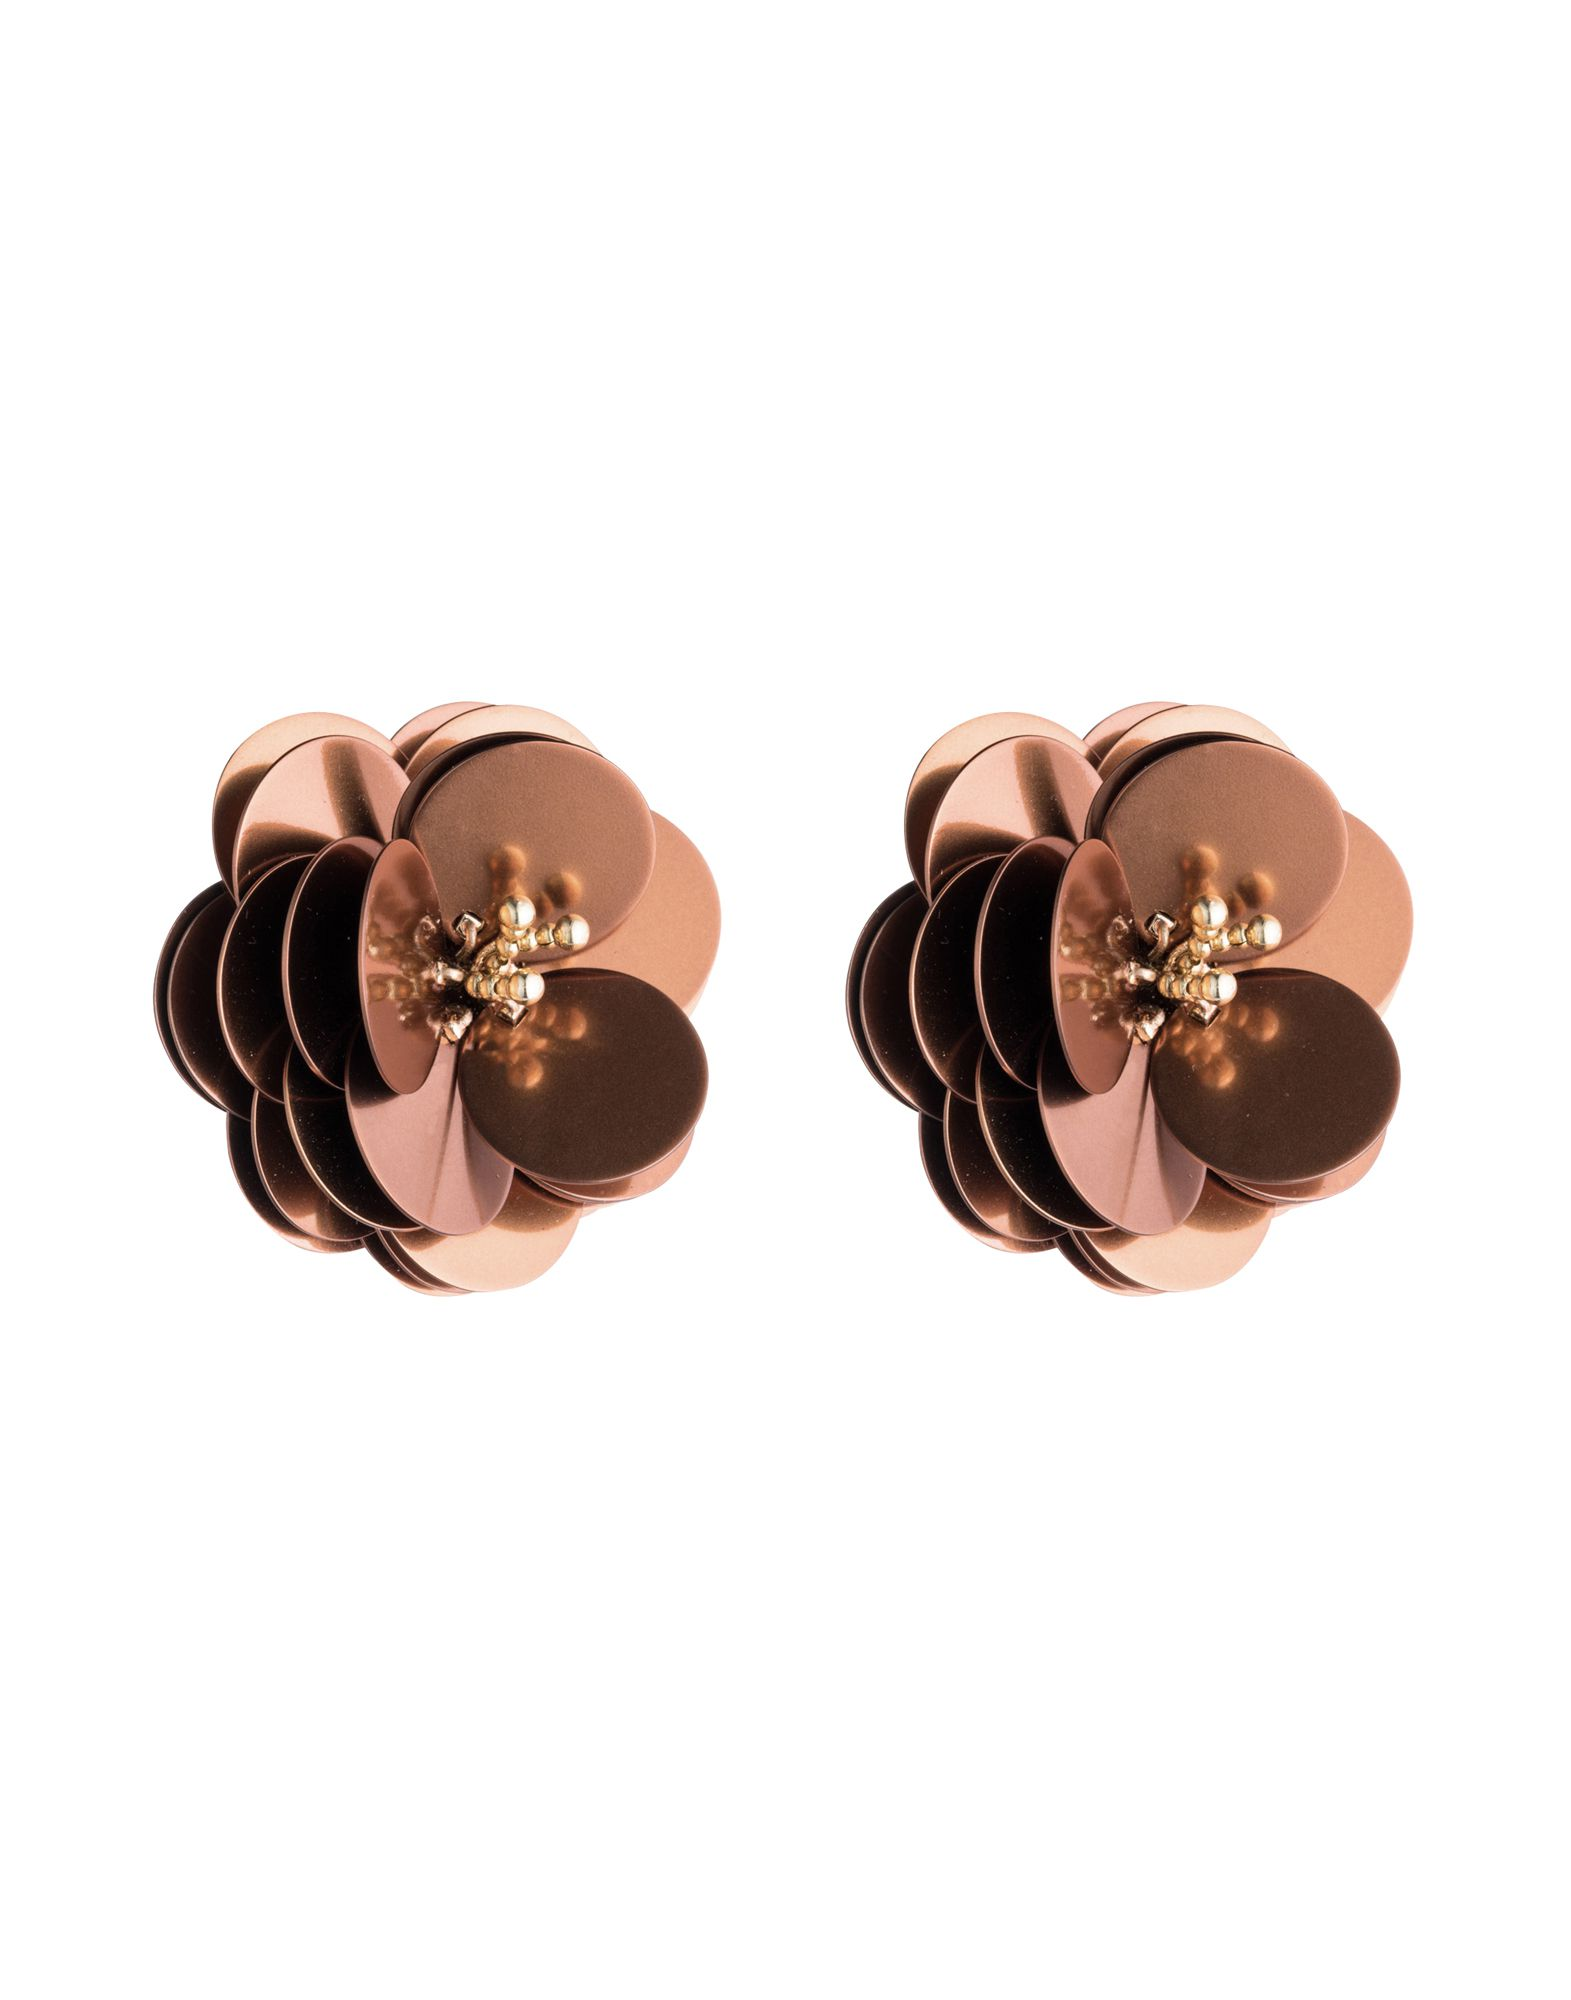 Orecchini Eddie Borgo Sikka Blossom Earrings - Donna - Acquista online su